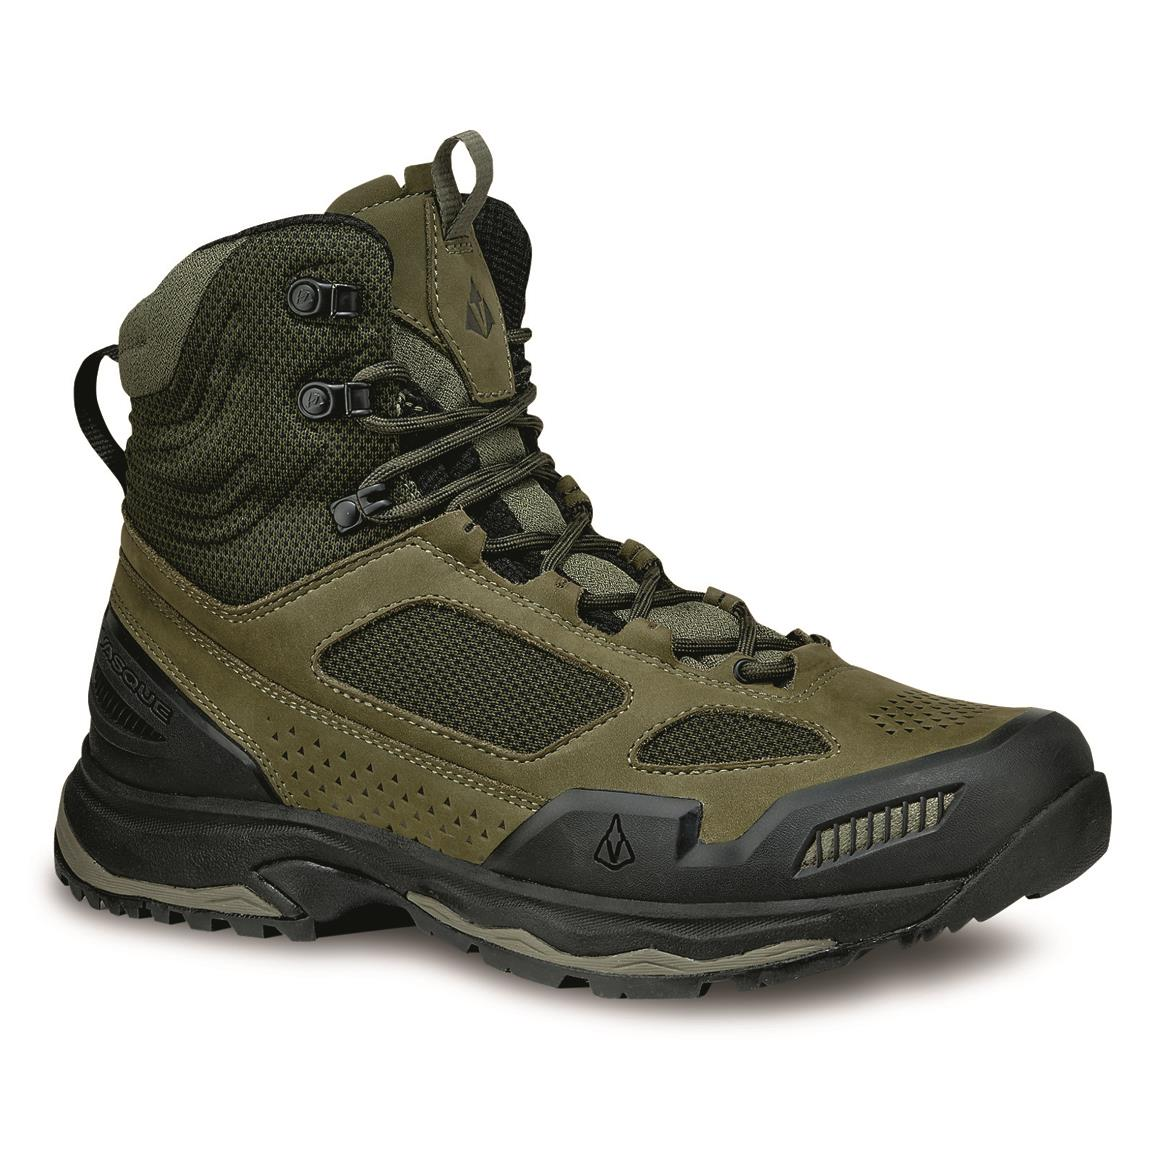 Vasque Men's Breeze AT Mid Hiking Boots, Dusty Olive/jet Black